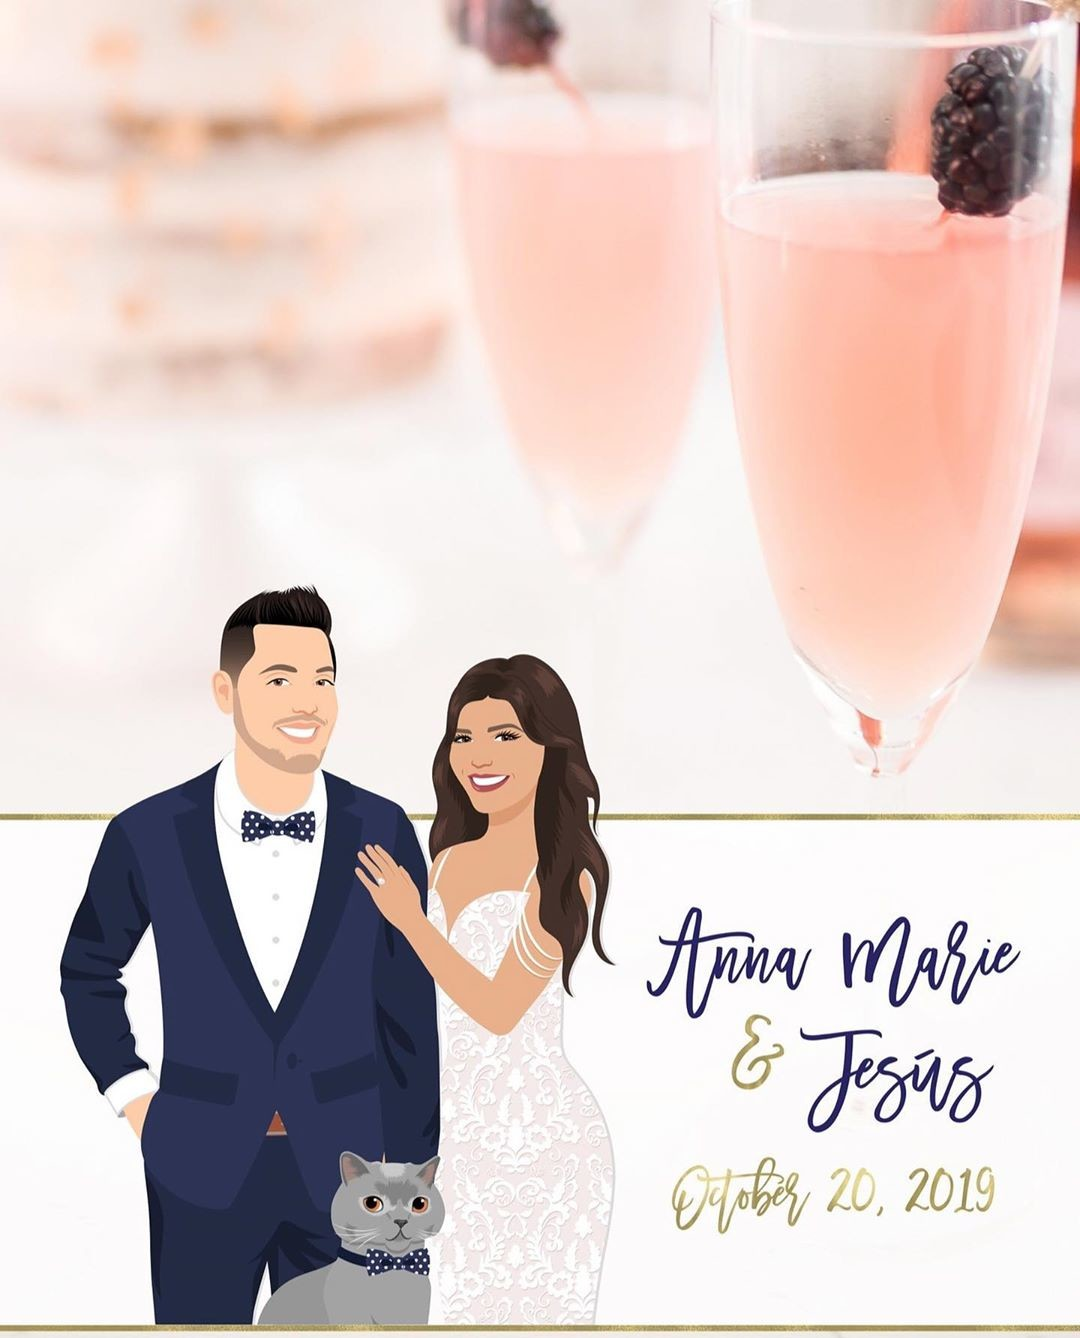 A digital wedding favor? We got you! 😉 These custom Snapchat filters are not only a fun way for your guests to interact at your